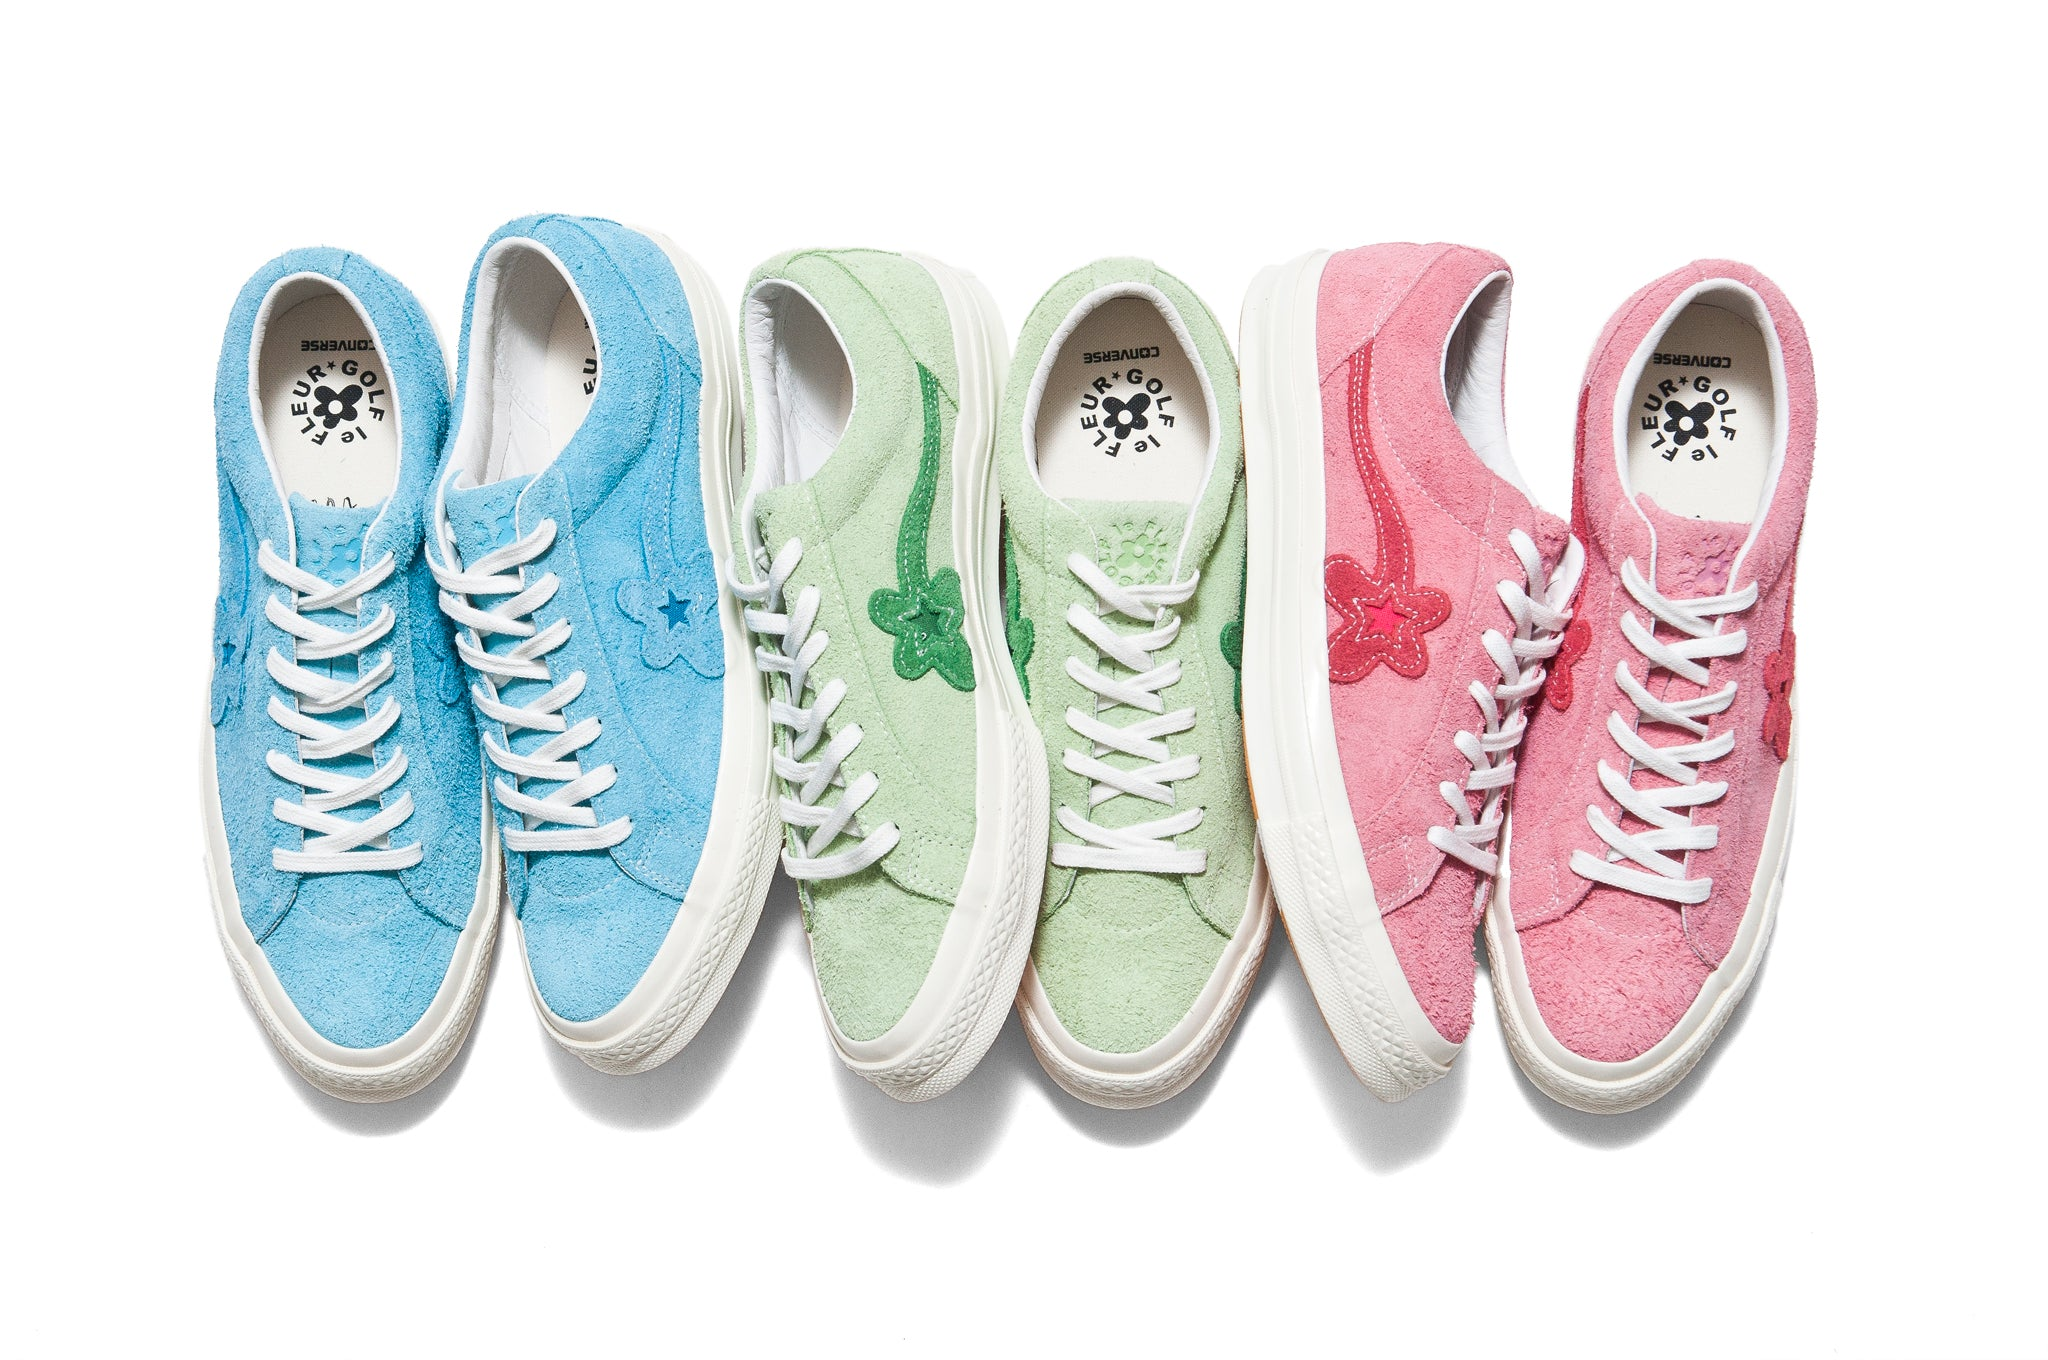 7b4306033491 Golf le Fleur x Converse One Star at shoplostfound Set ...